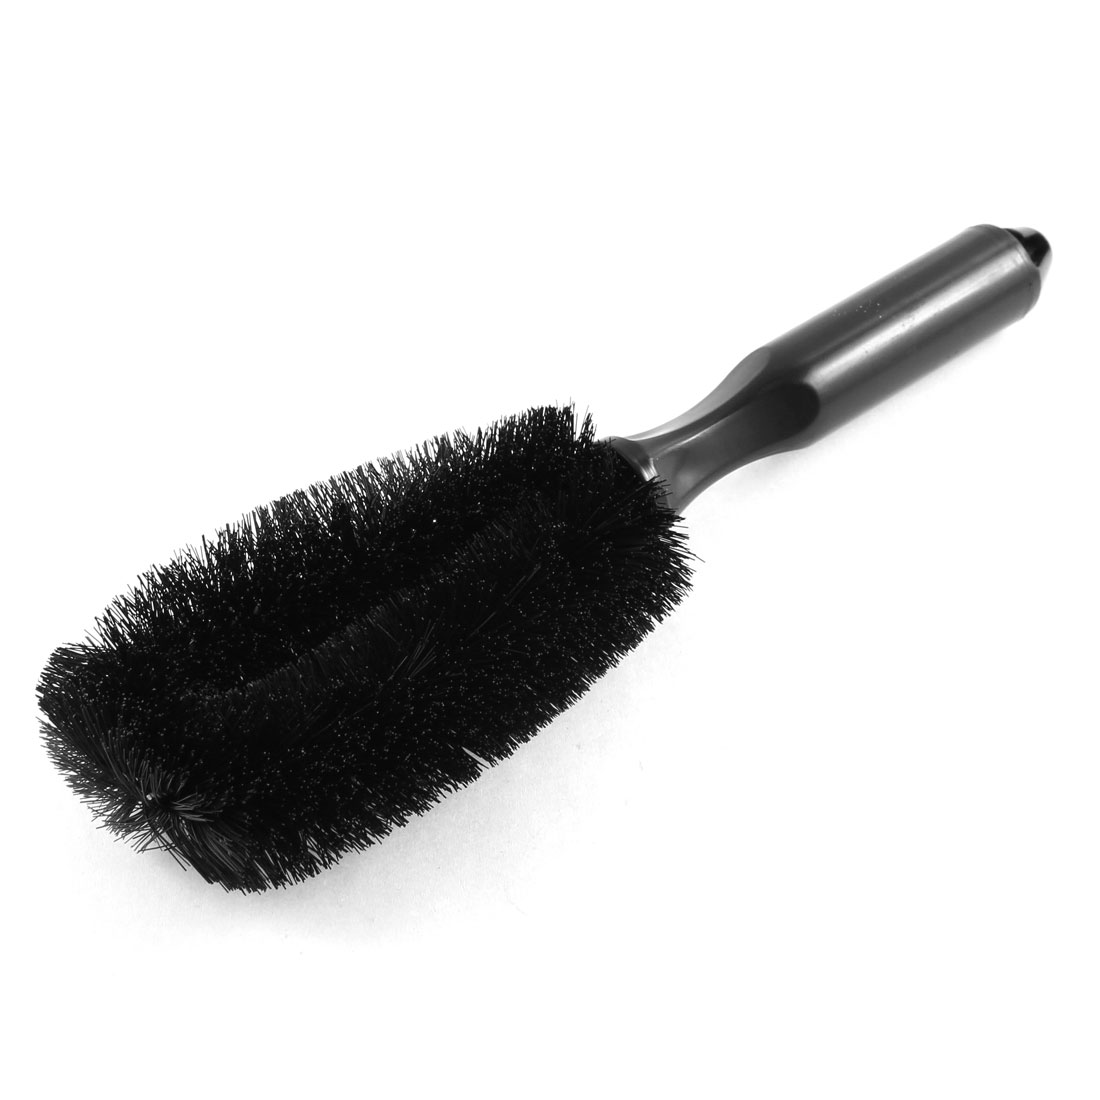 26cm Long Black Handle Wheel Tire Rim Cleaning Tool Brush for Car